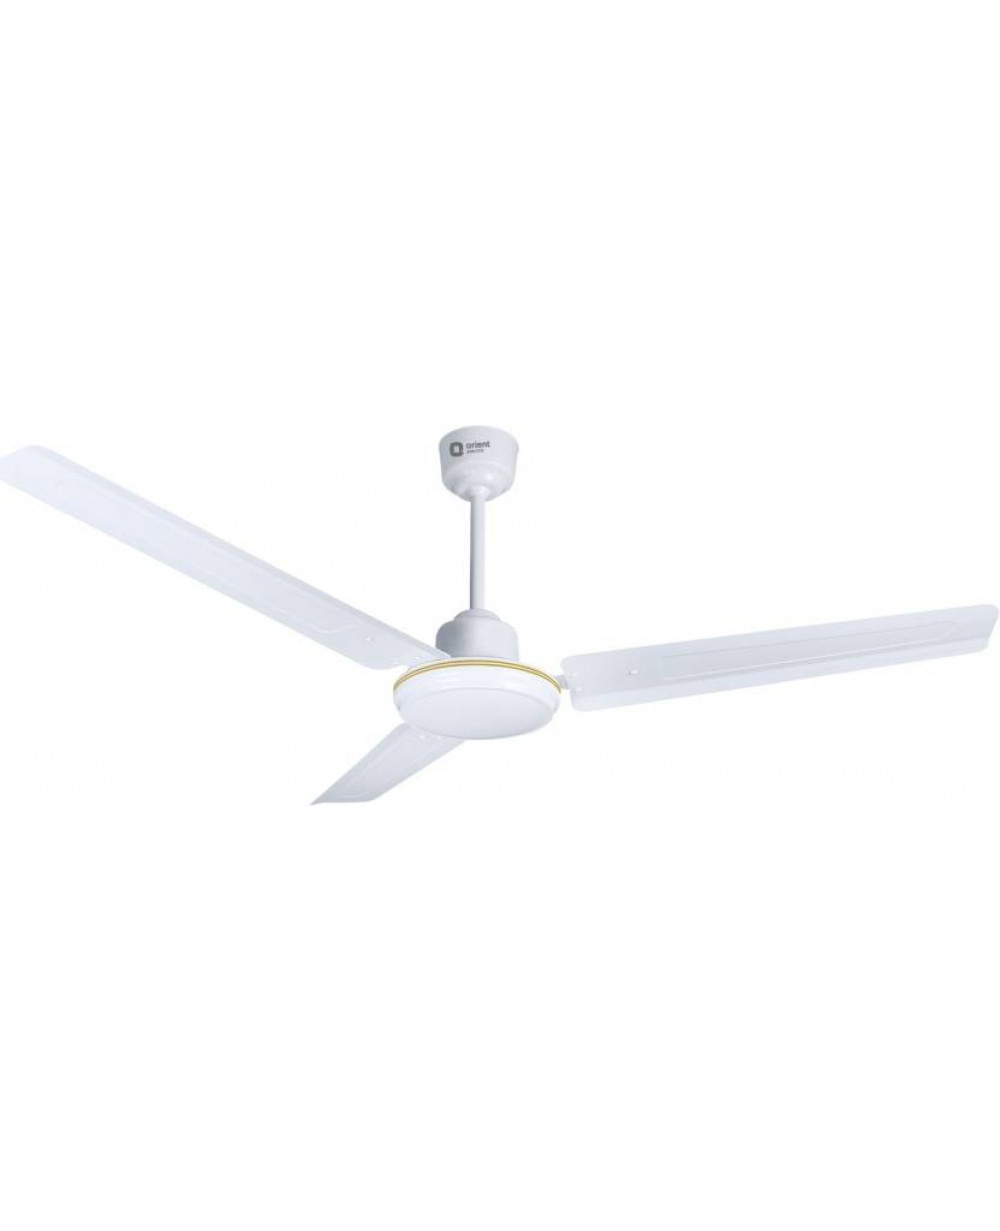 Orient new air 48 inch 3 blade ceiling fan white more views orient new air 48 inch 3 blade ceiling fan aloadofball Images